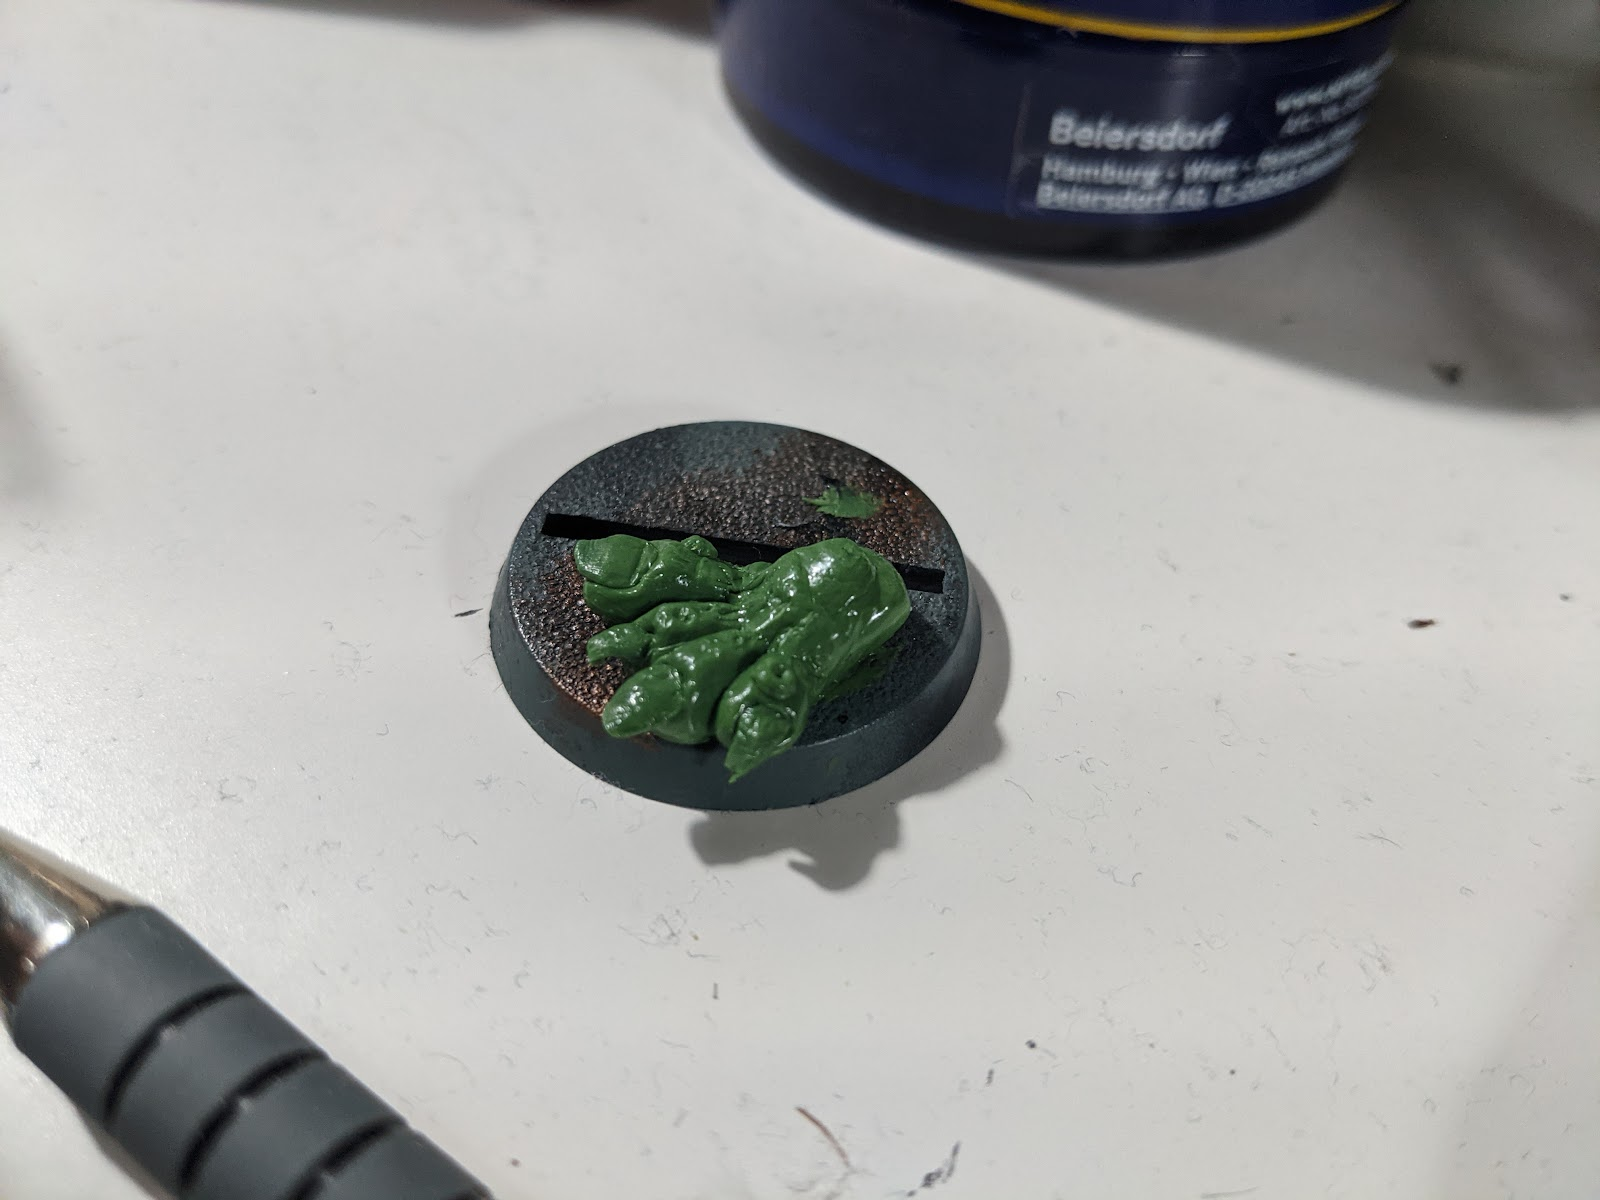 A troll's foot, sculpted out of green modelling putty.